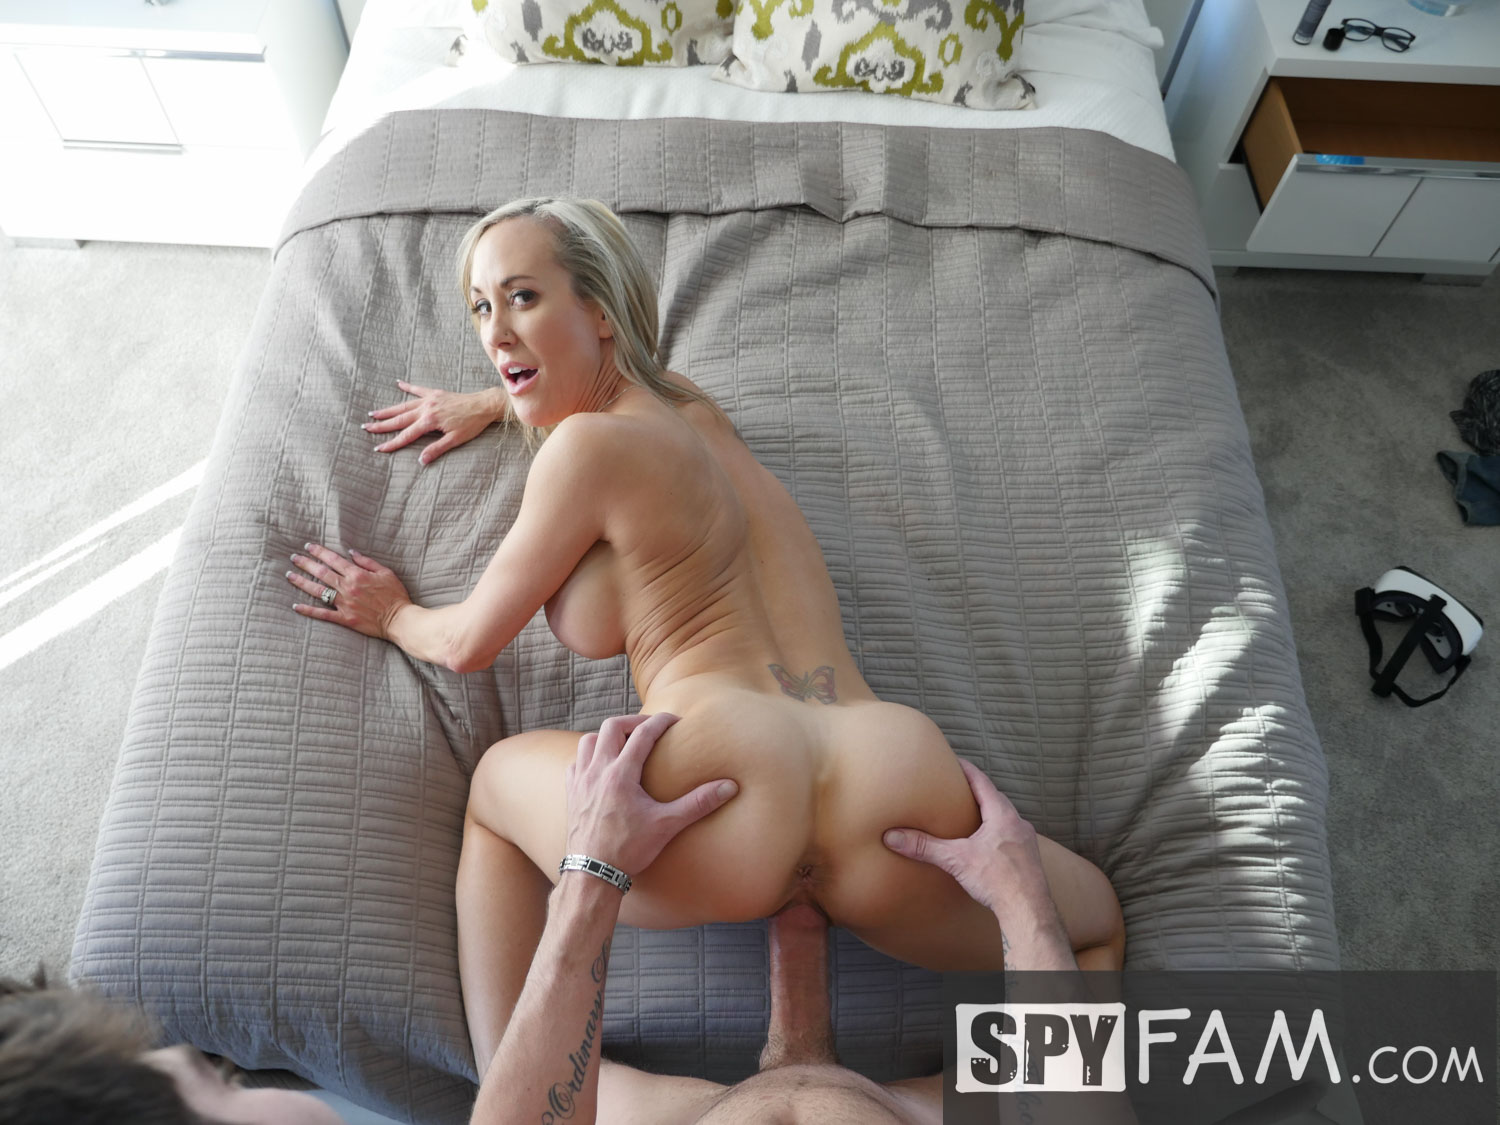 Naughty milf surprises her man with a hot blowjob